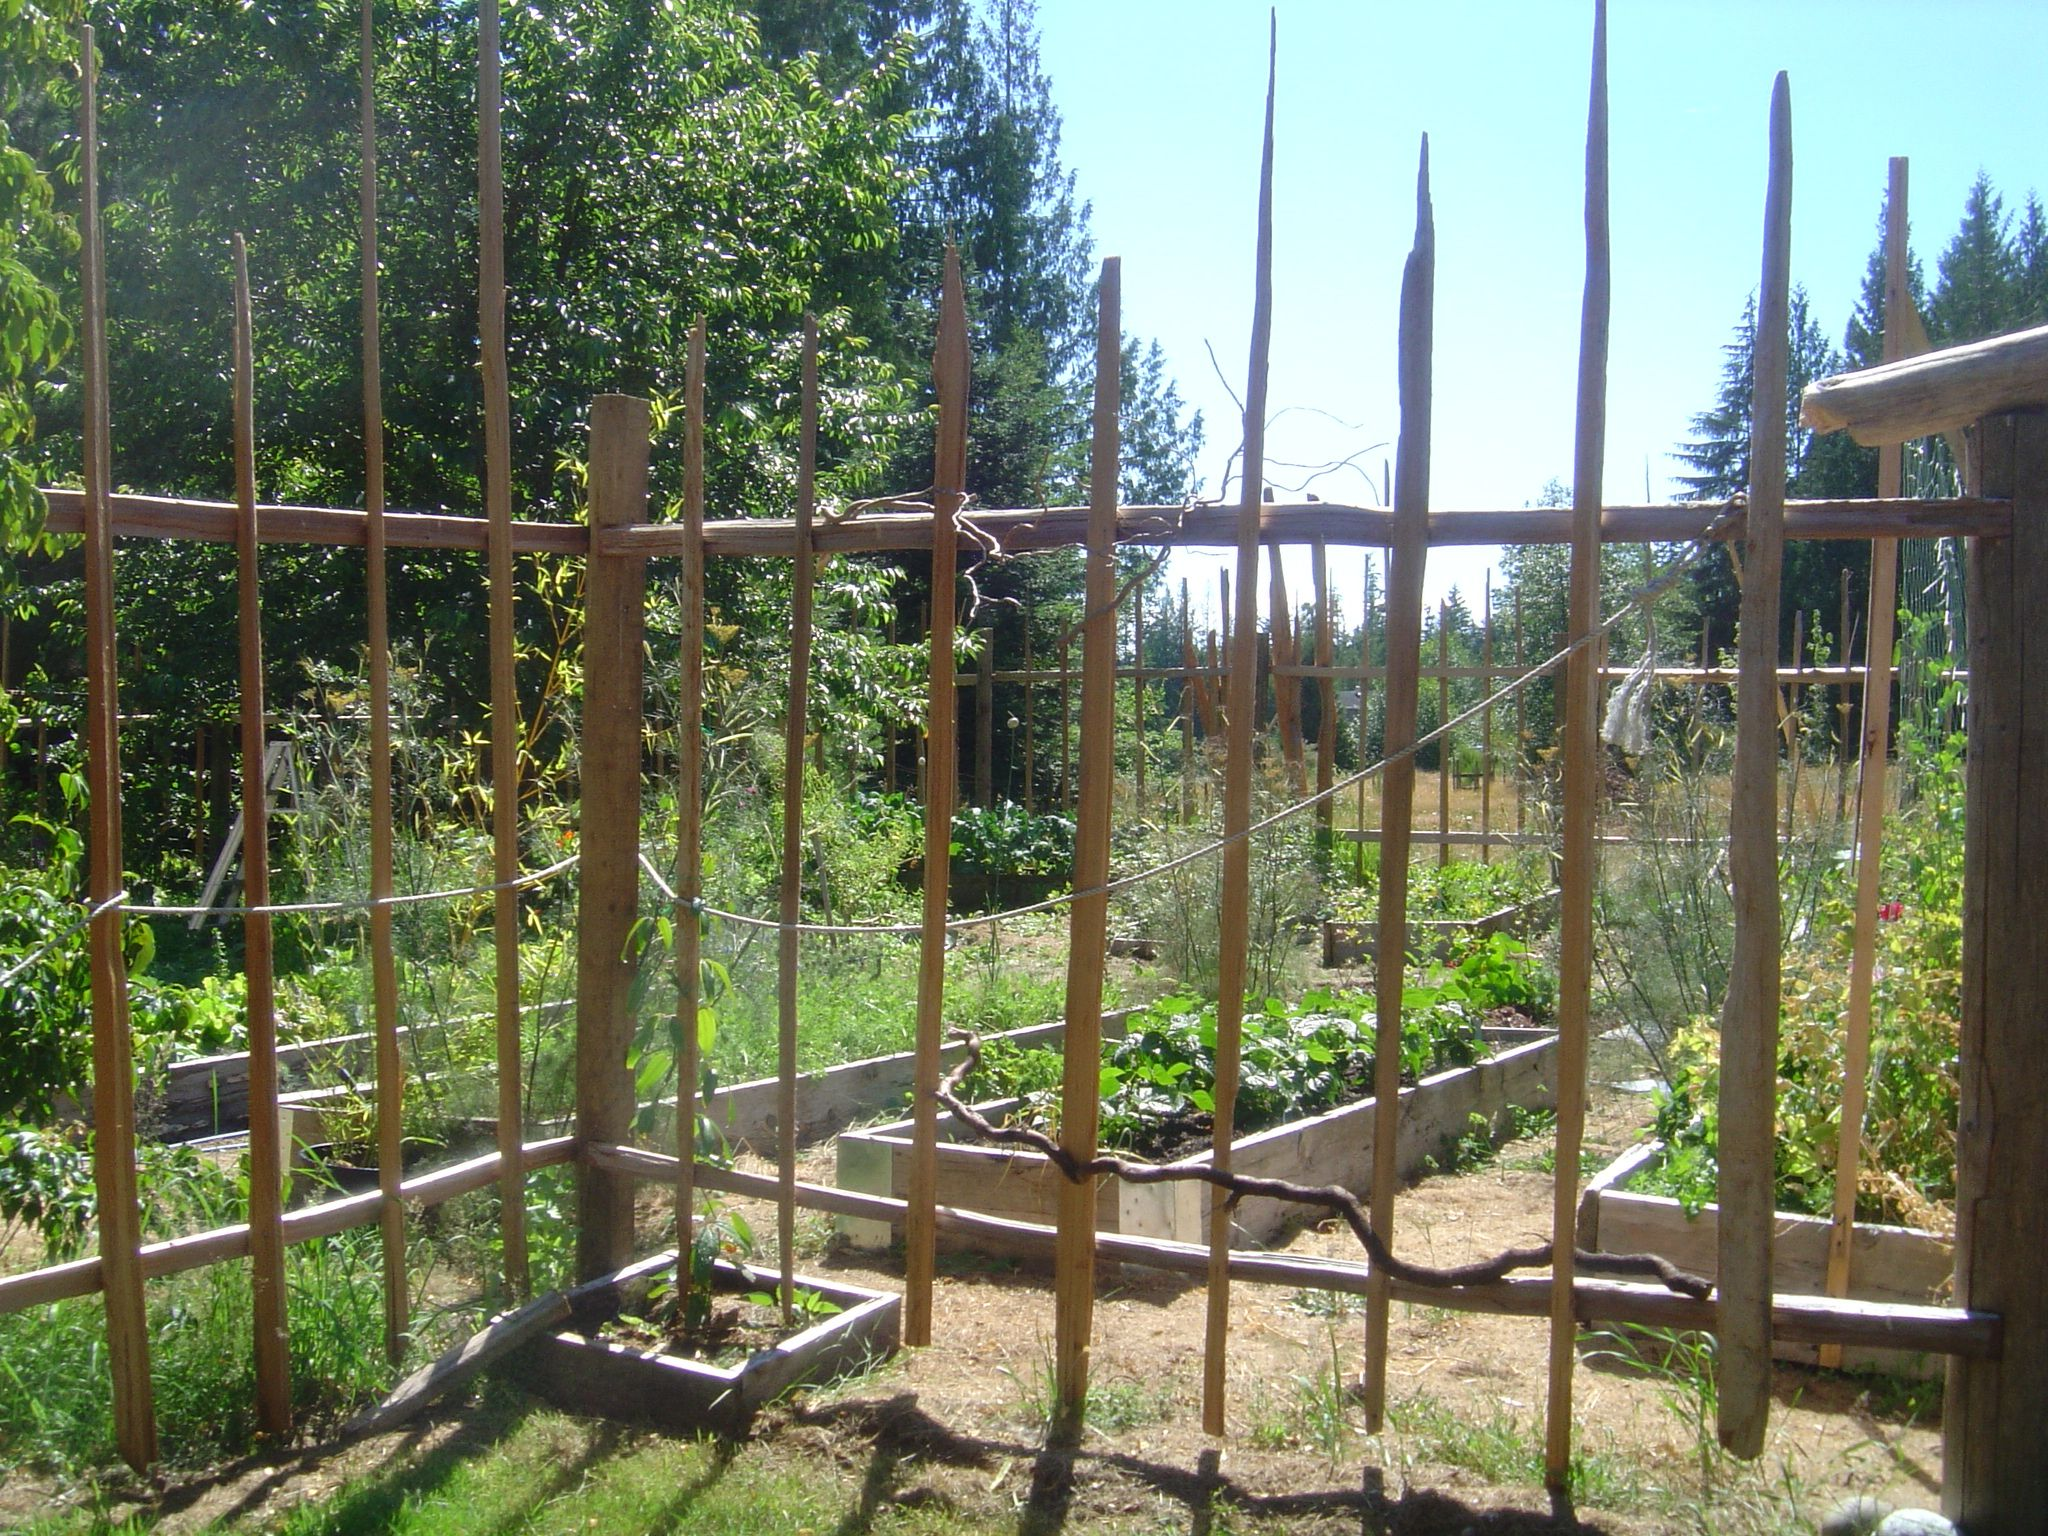 Diy Garden Deer Fence And How To Build A Deer Proofu2026 Funky, Garden Enclosure